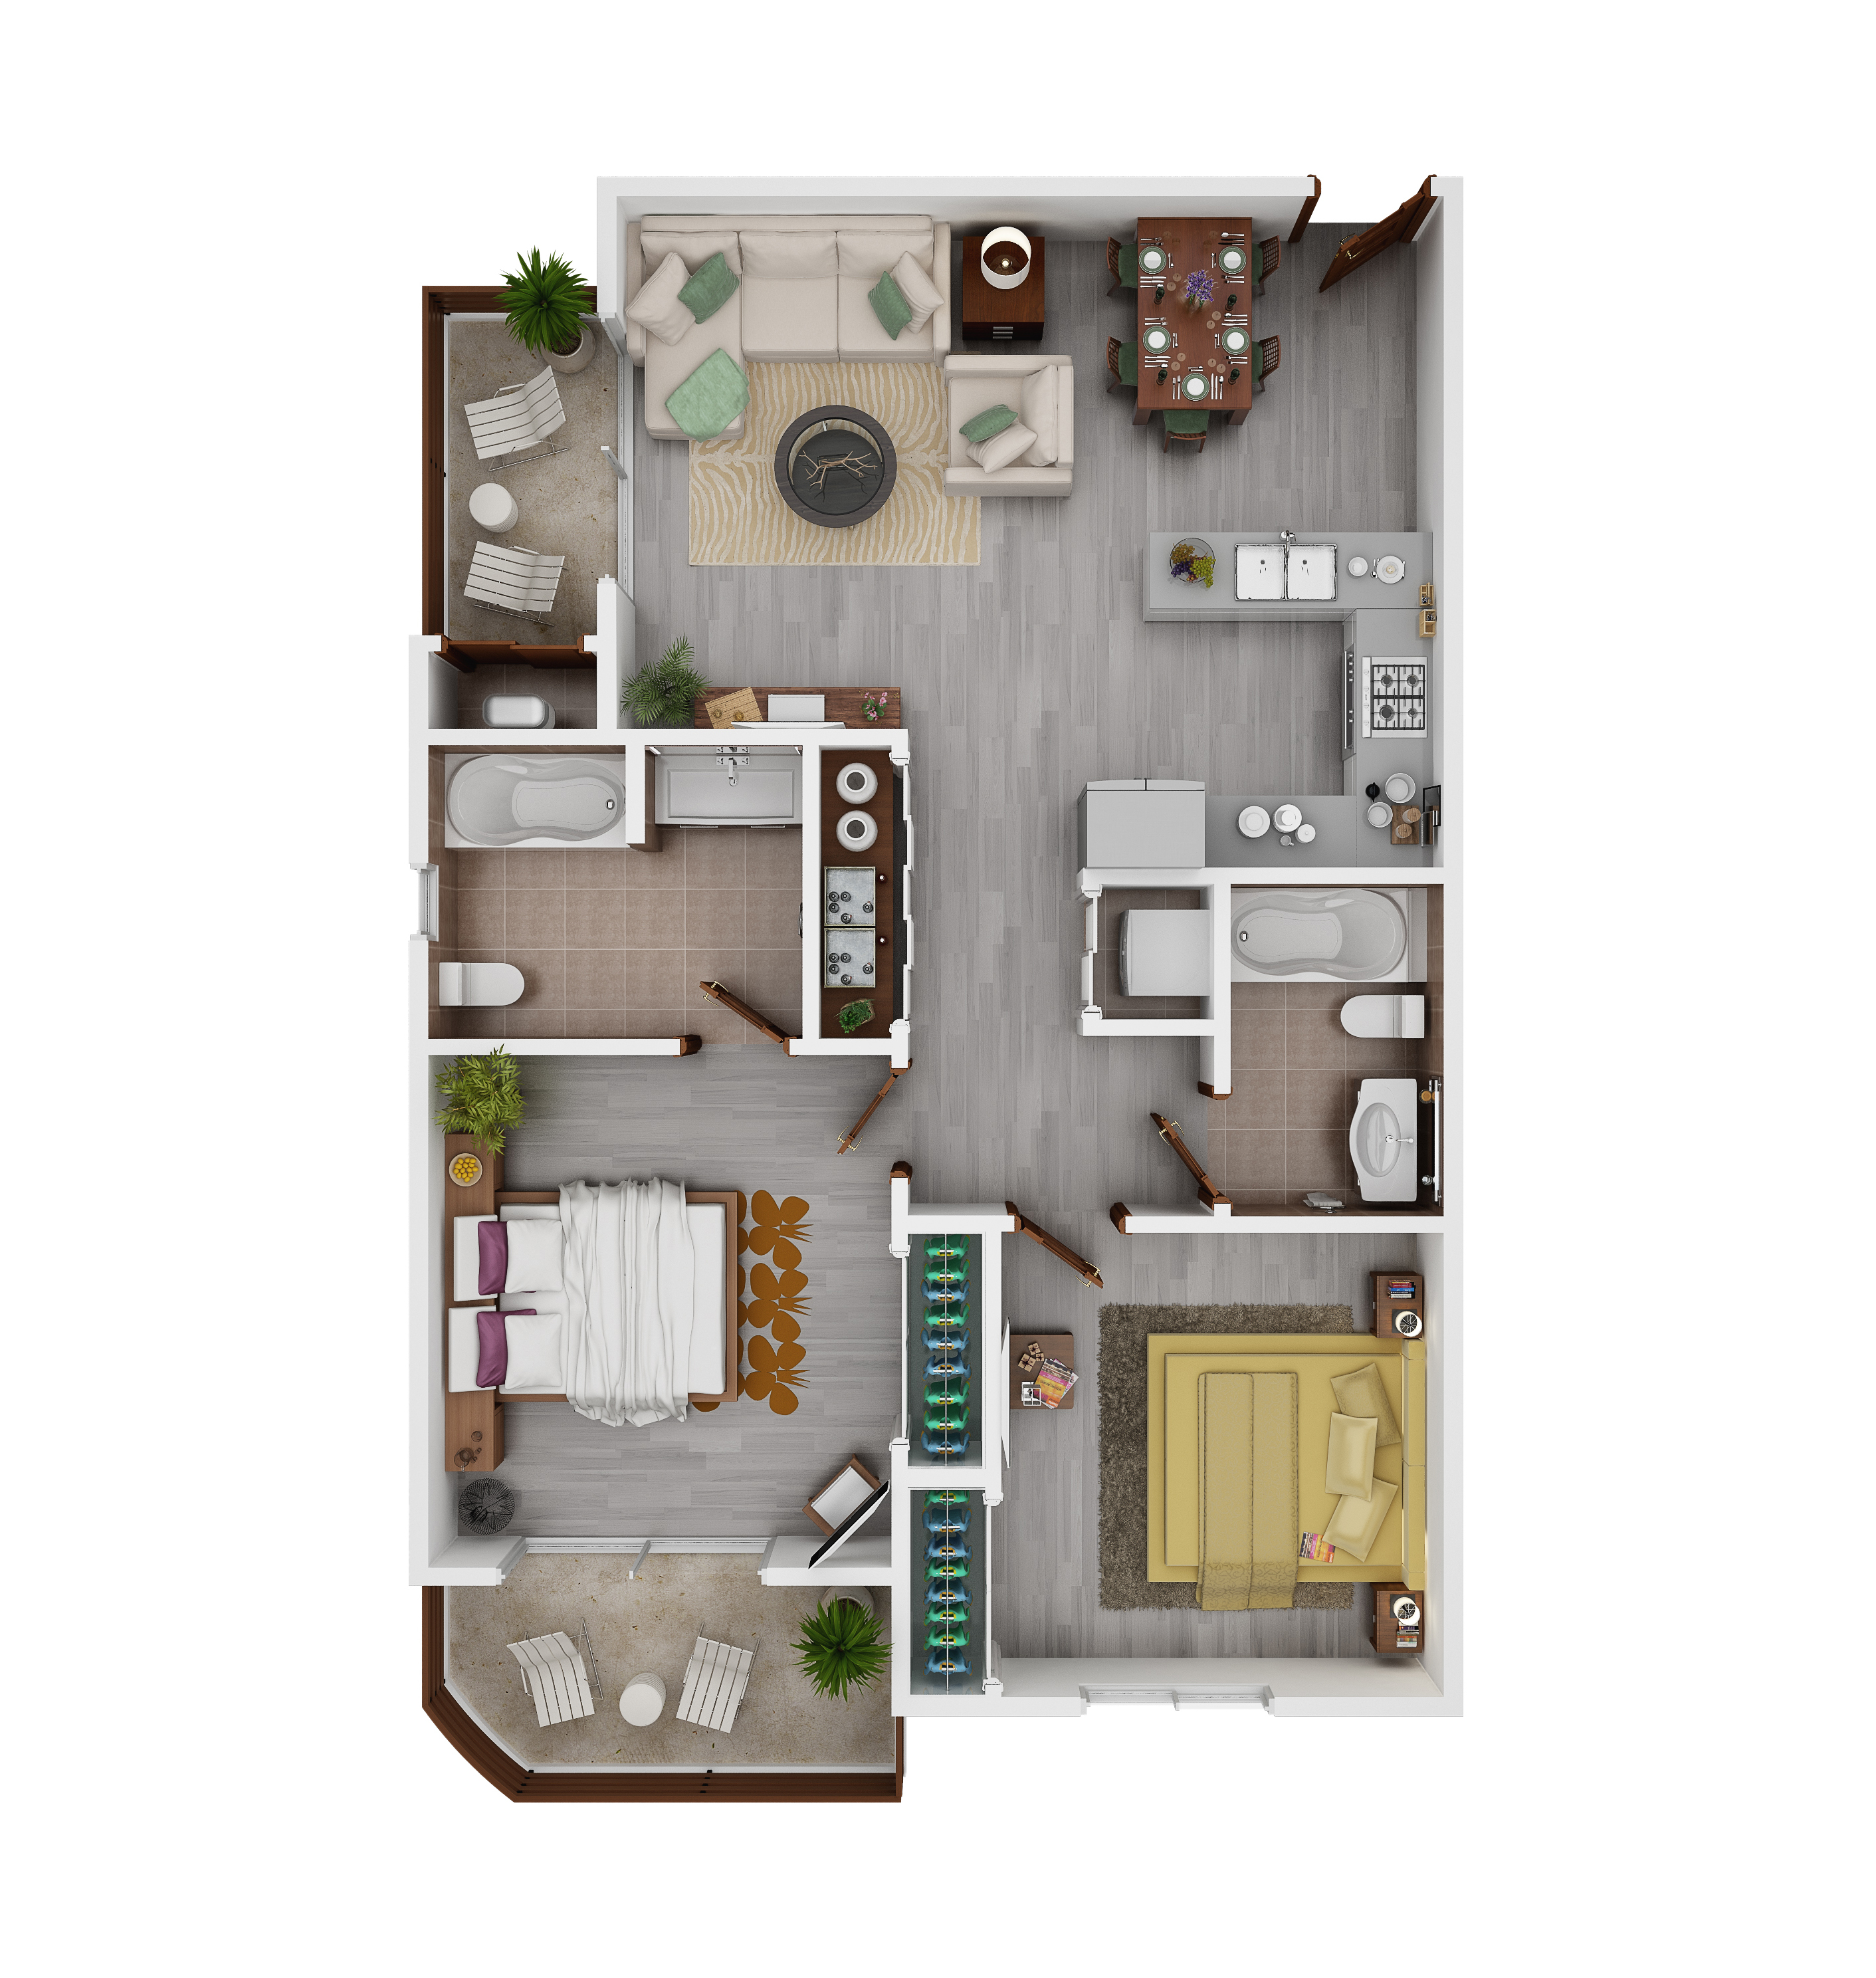 unit 107 14072018 search homes for sale in bethany villa unit 1-107, az for free view all 3 listings available in bethany villa unit 1-107 with an average price of $117,167 see maps, photos, and more.